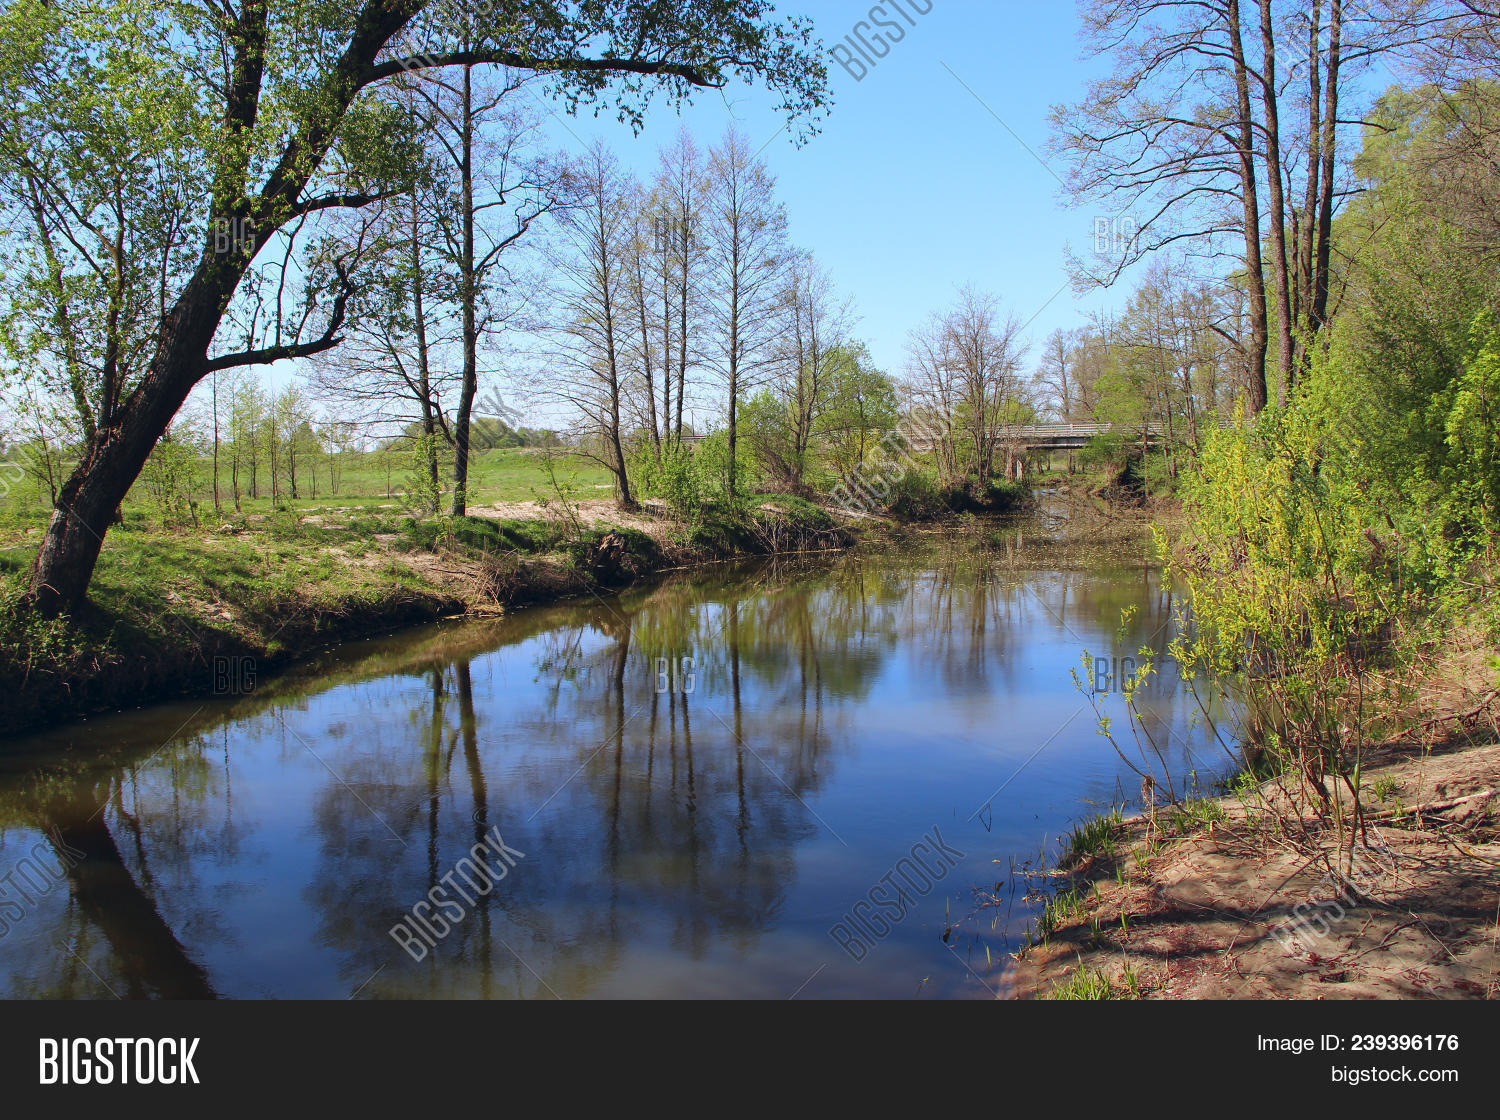 Landscape River Trees Image Photo Free Trial Bigstock